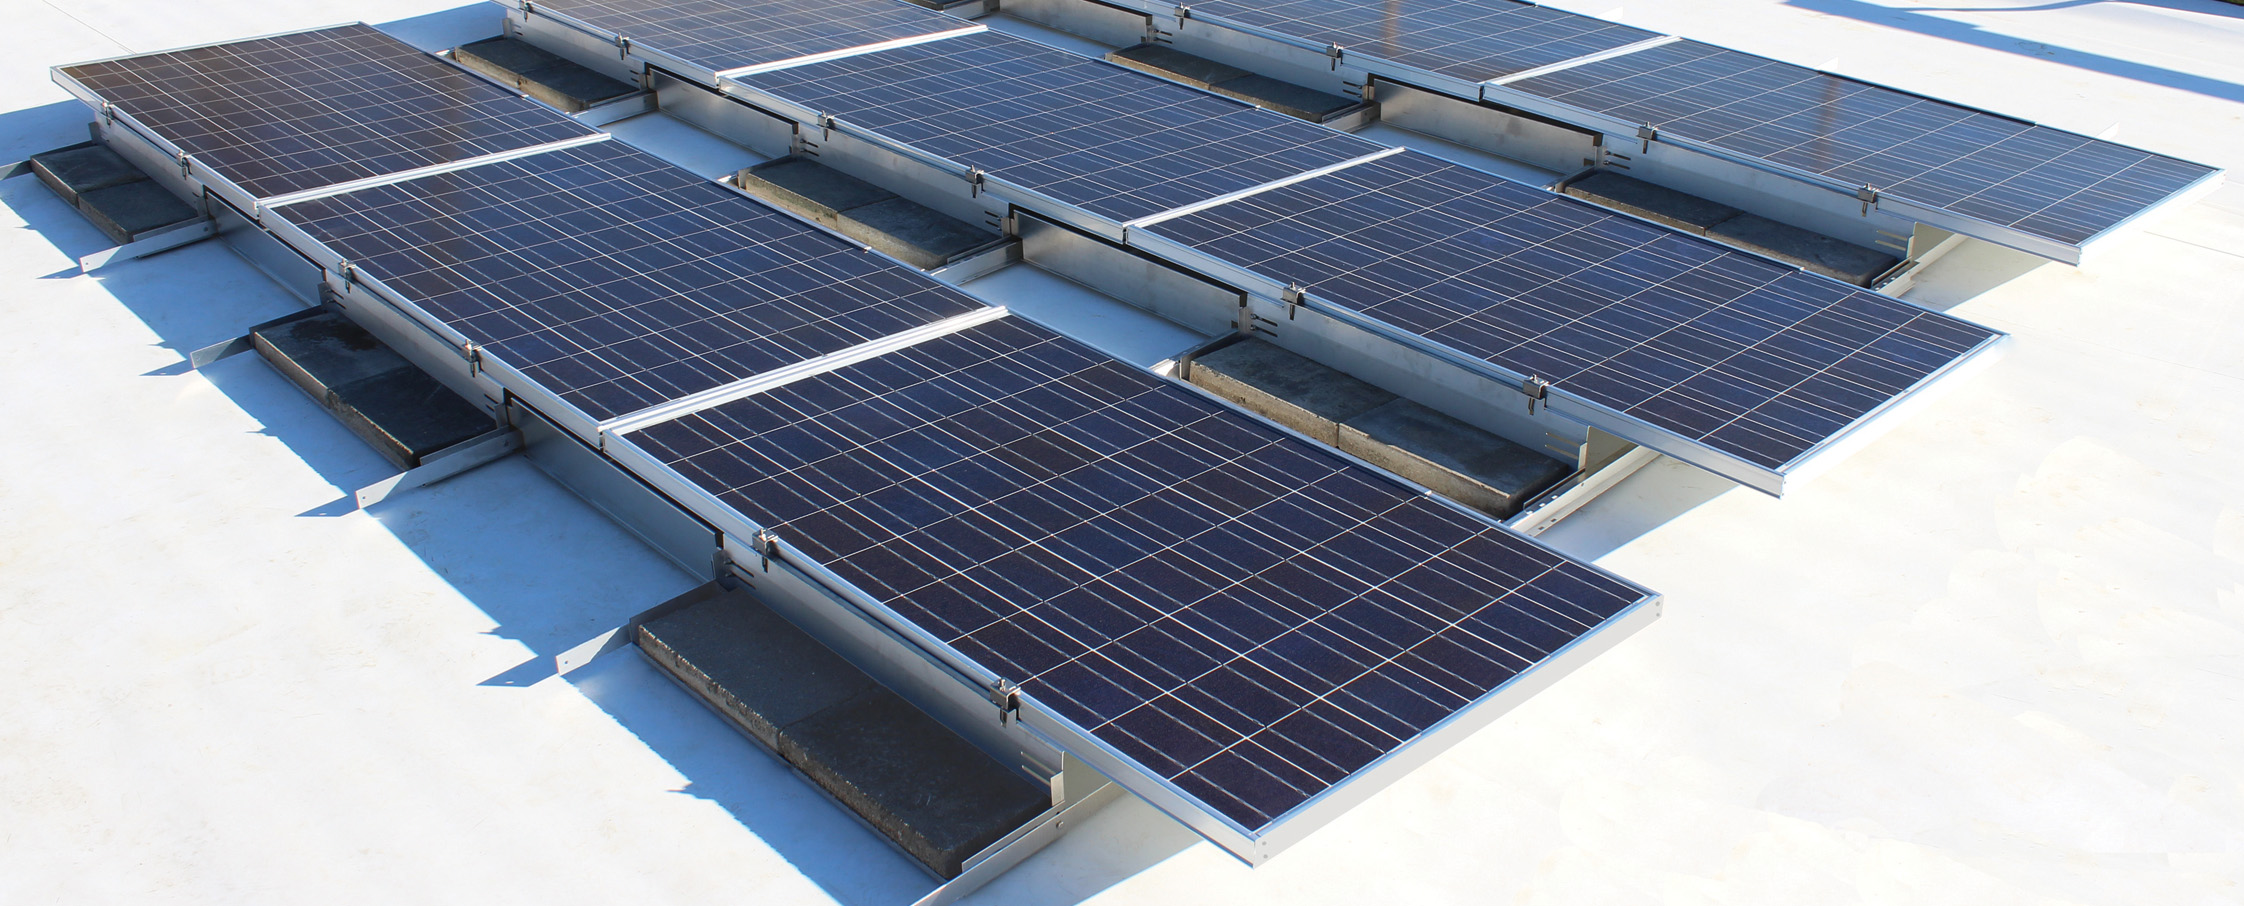 DPW Solar Introduces New Mounting System